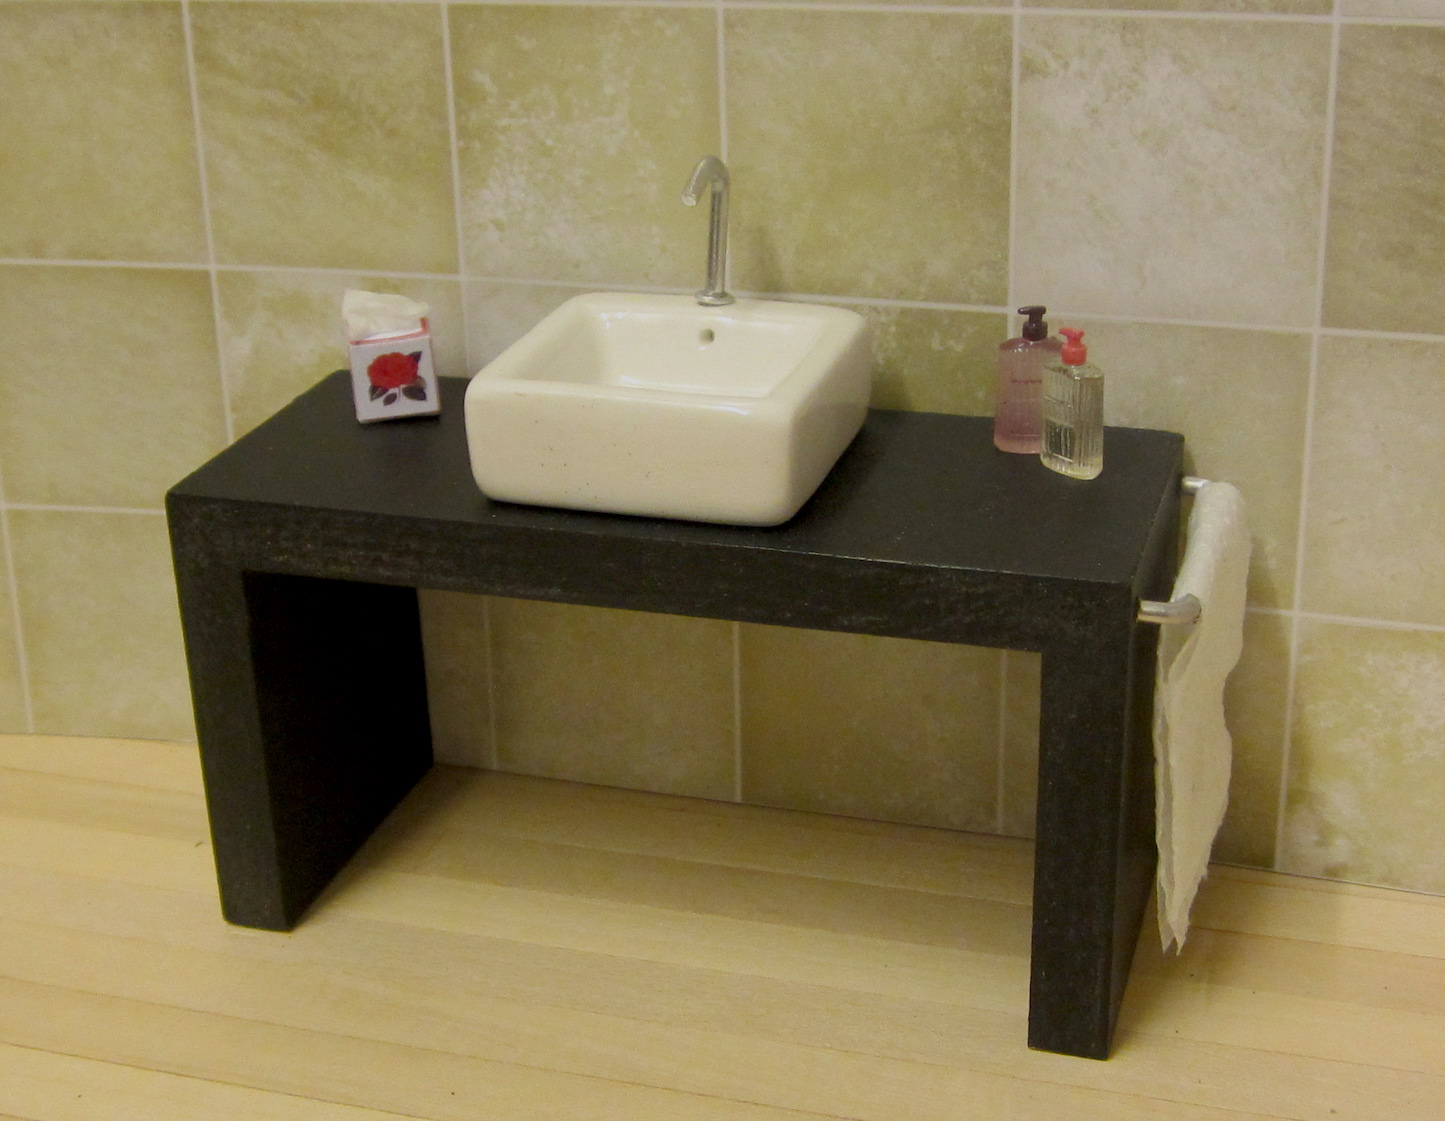 ELF black vanity unit